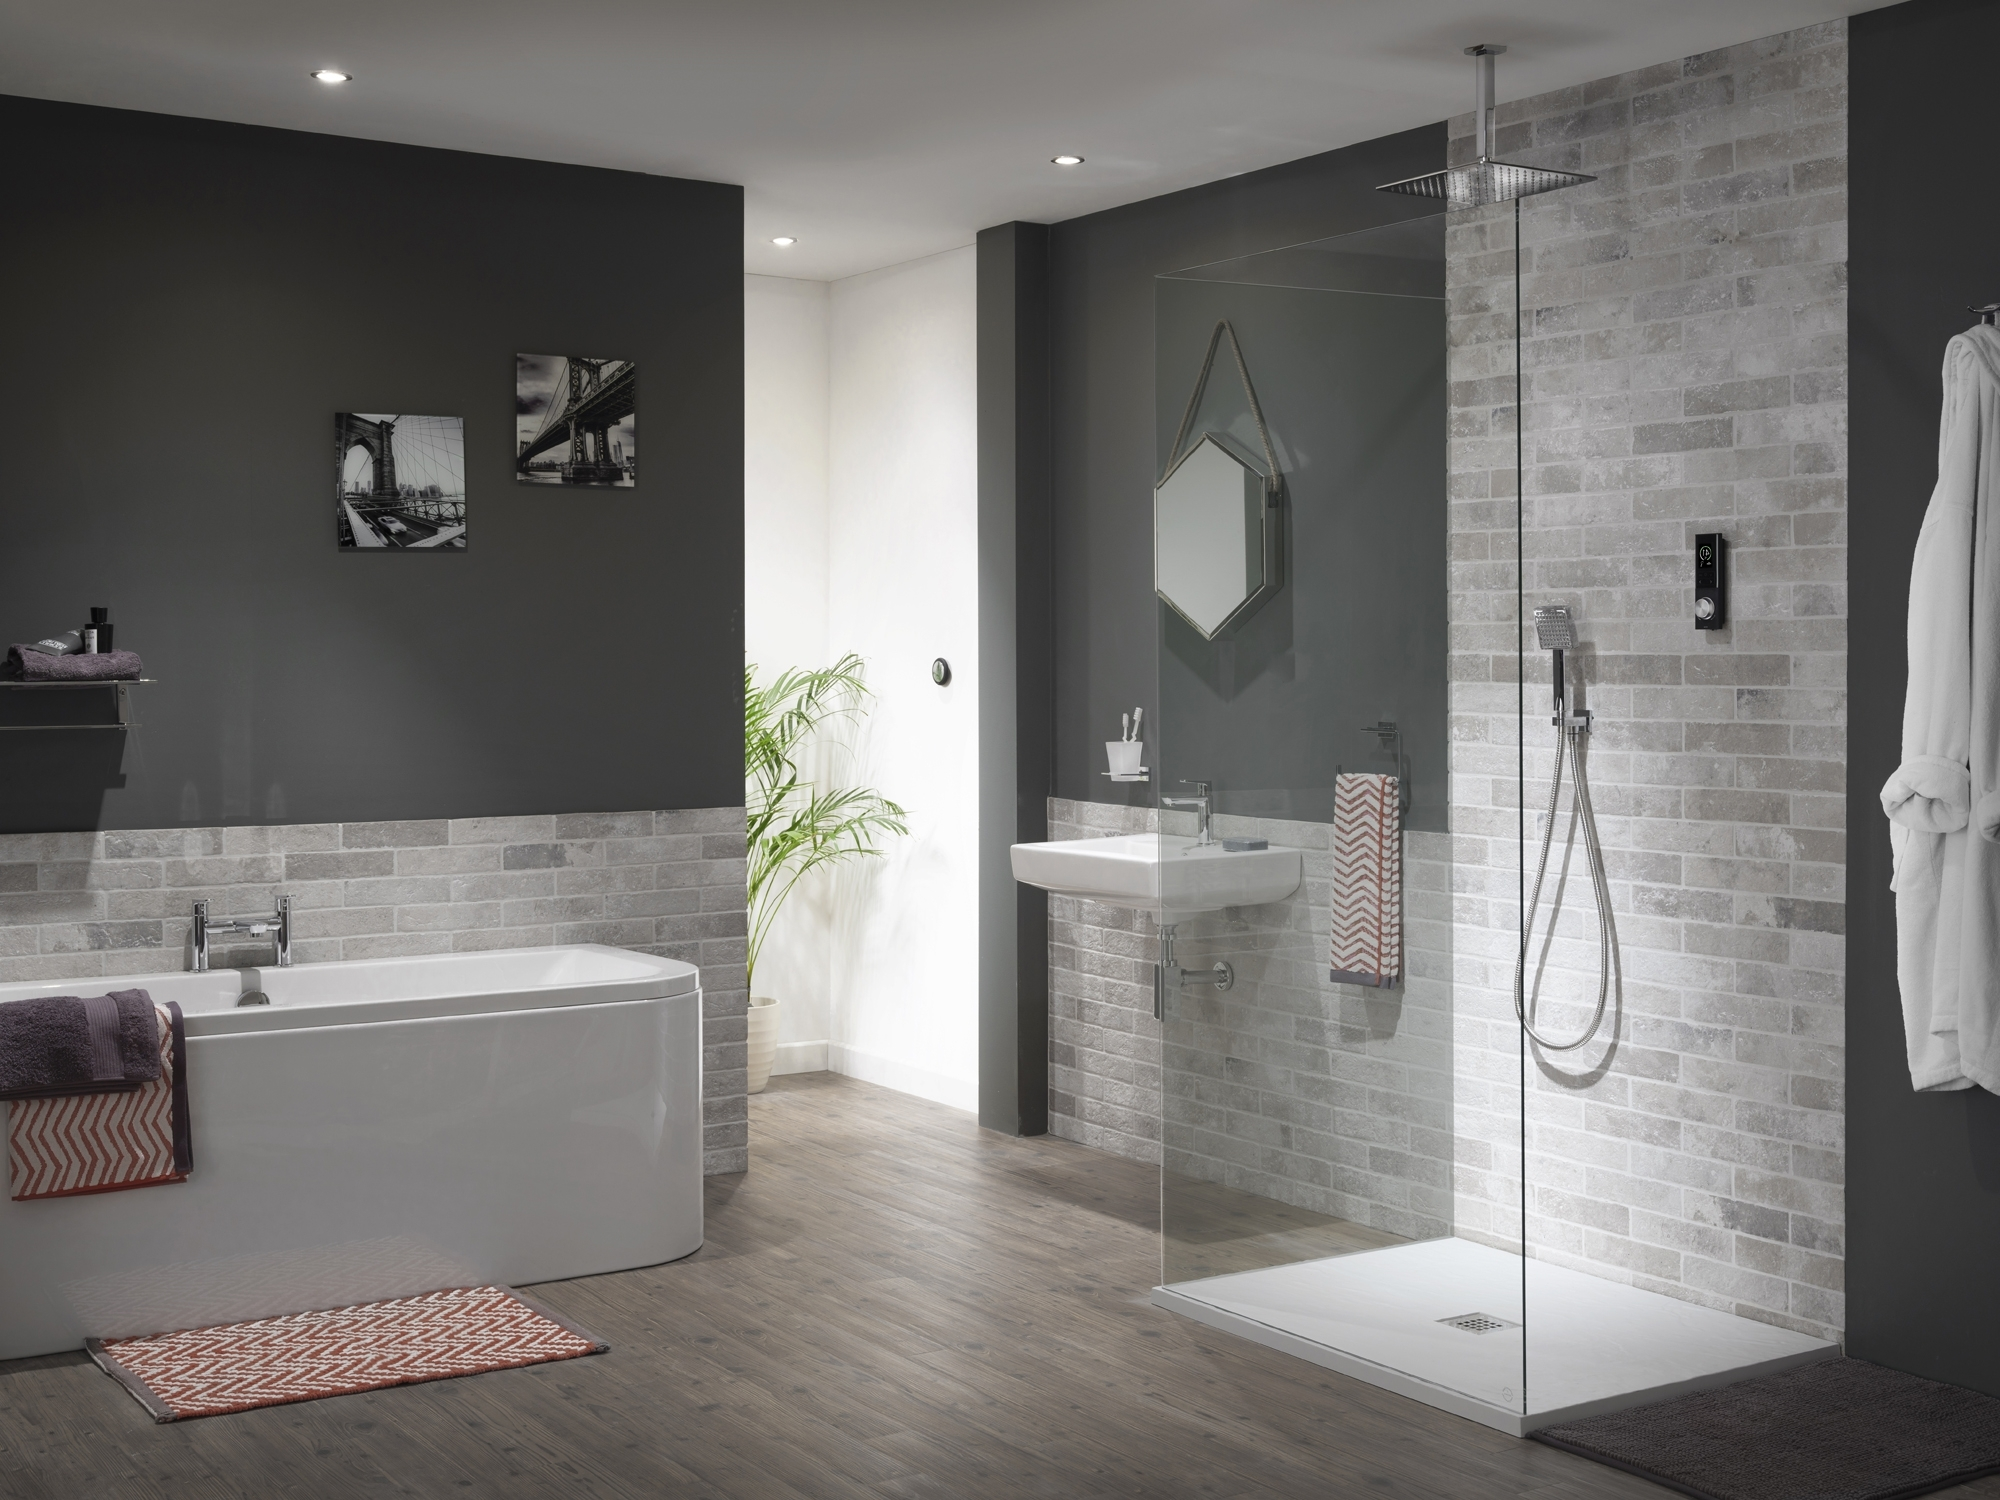 Using The Latest Shower Trends To Create Stand Out Bathrooms 40+ Bathroom 2018 Uk Ideas